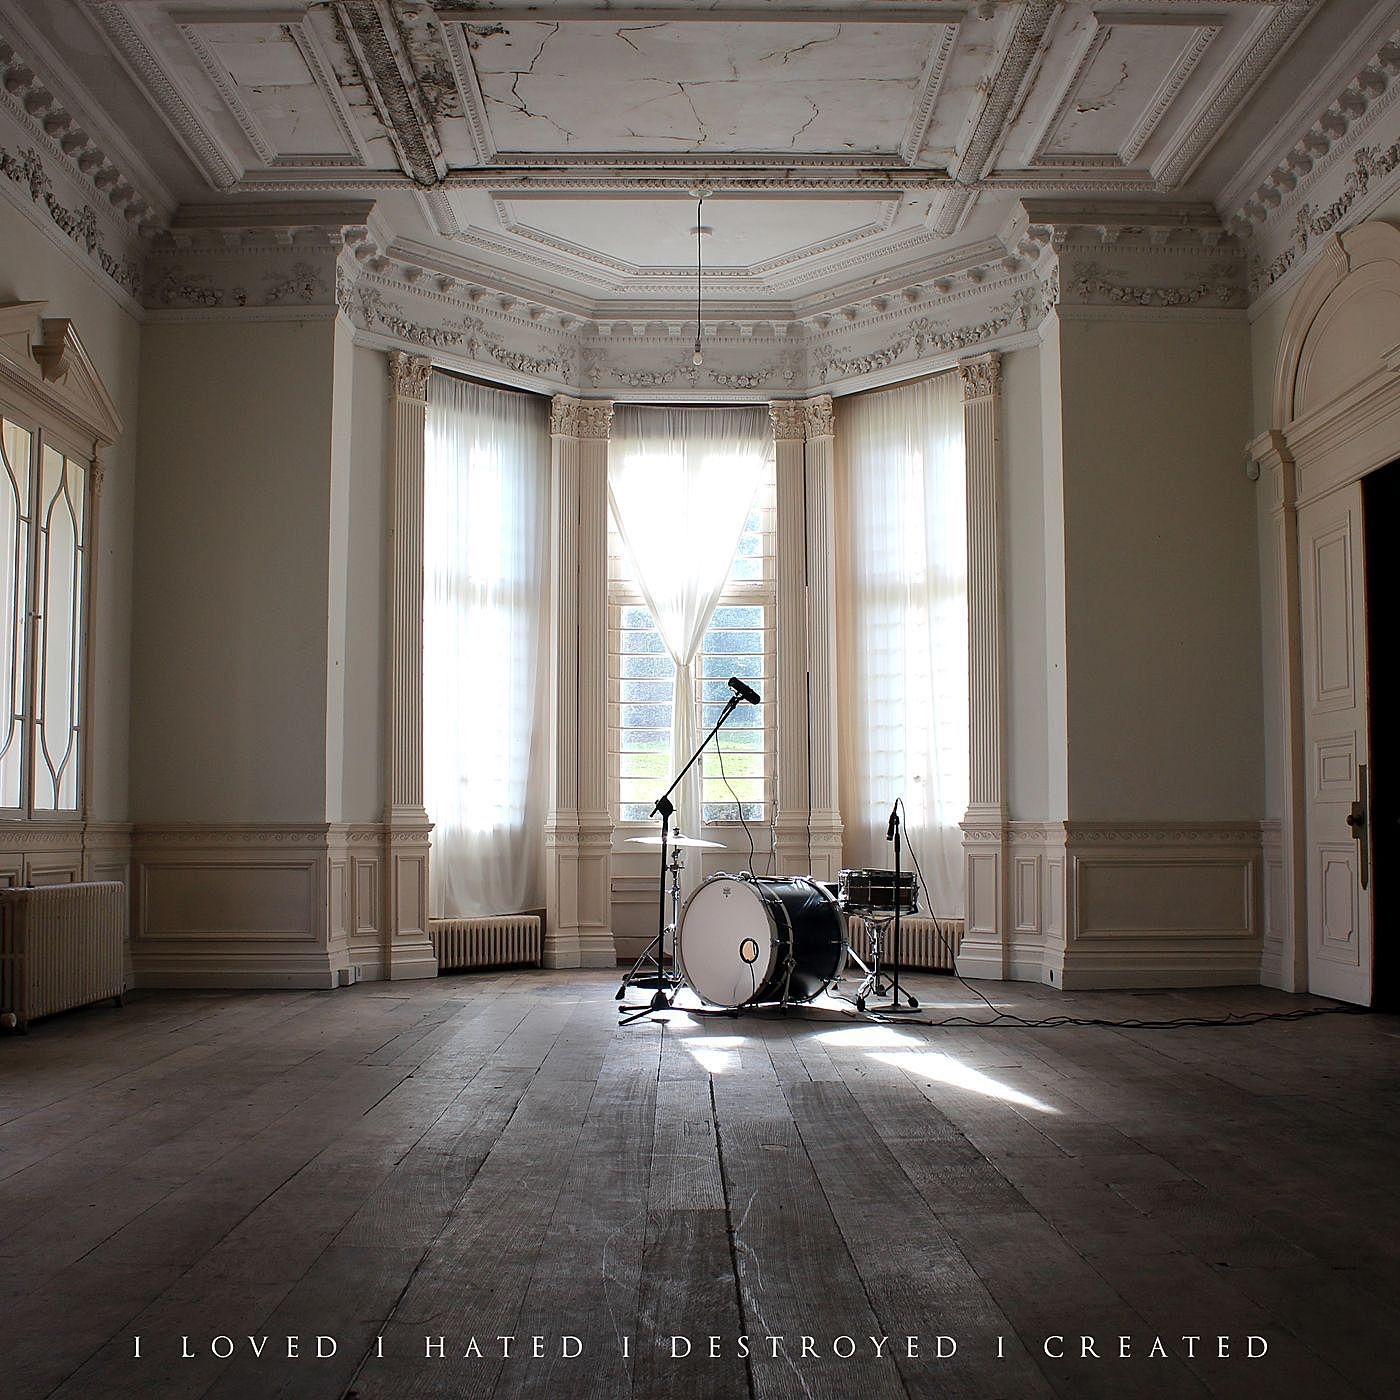 The Elijah - I Loved I Hated I Destroyed I Created [Deluxe Version] (2012)